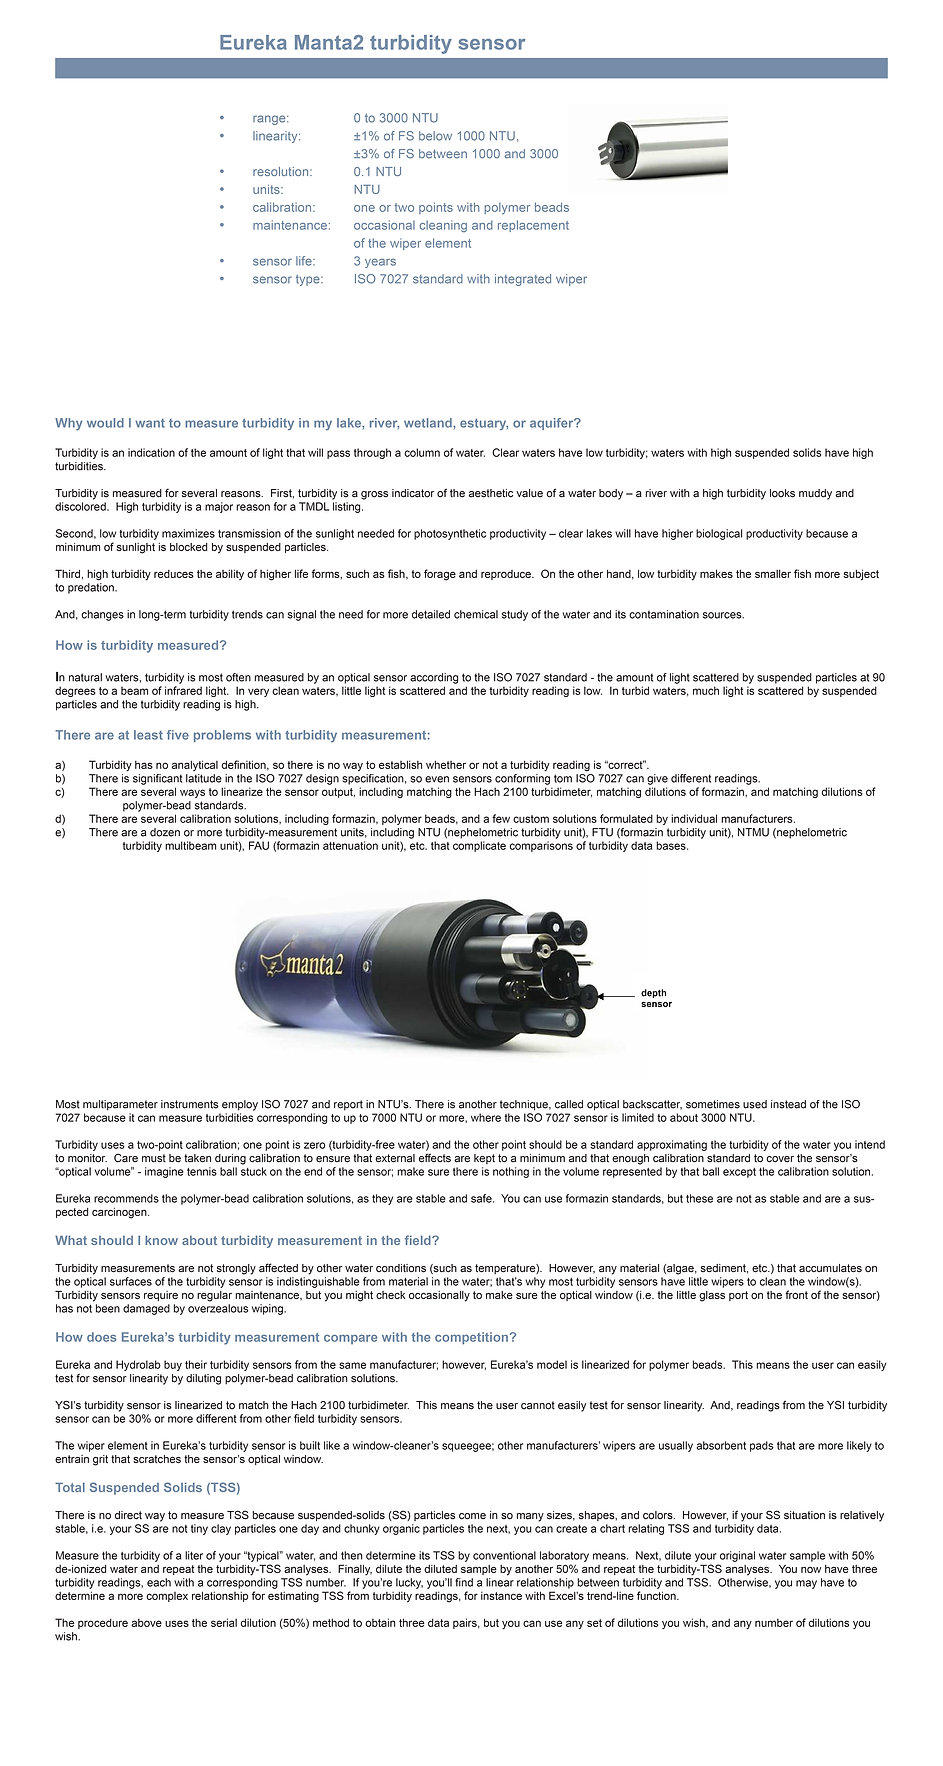 Turbidity Sensor information and specifications